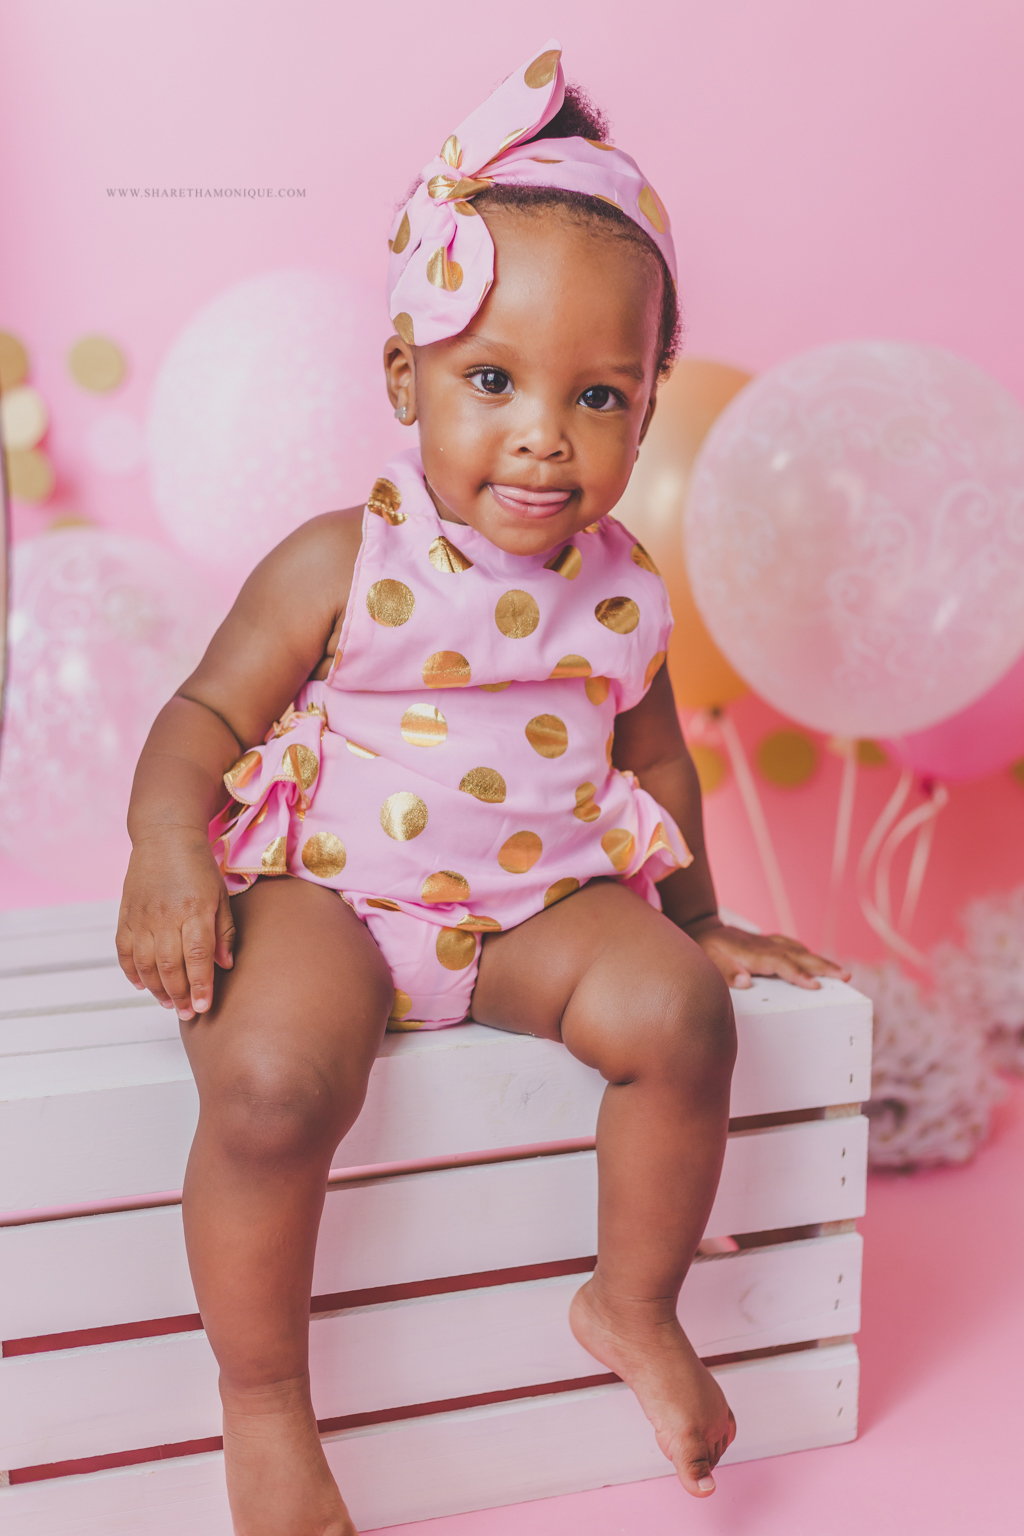 Charlotte Baby Cake Smash - One Year Birthday-3.jpg